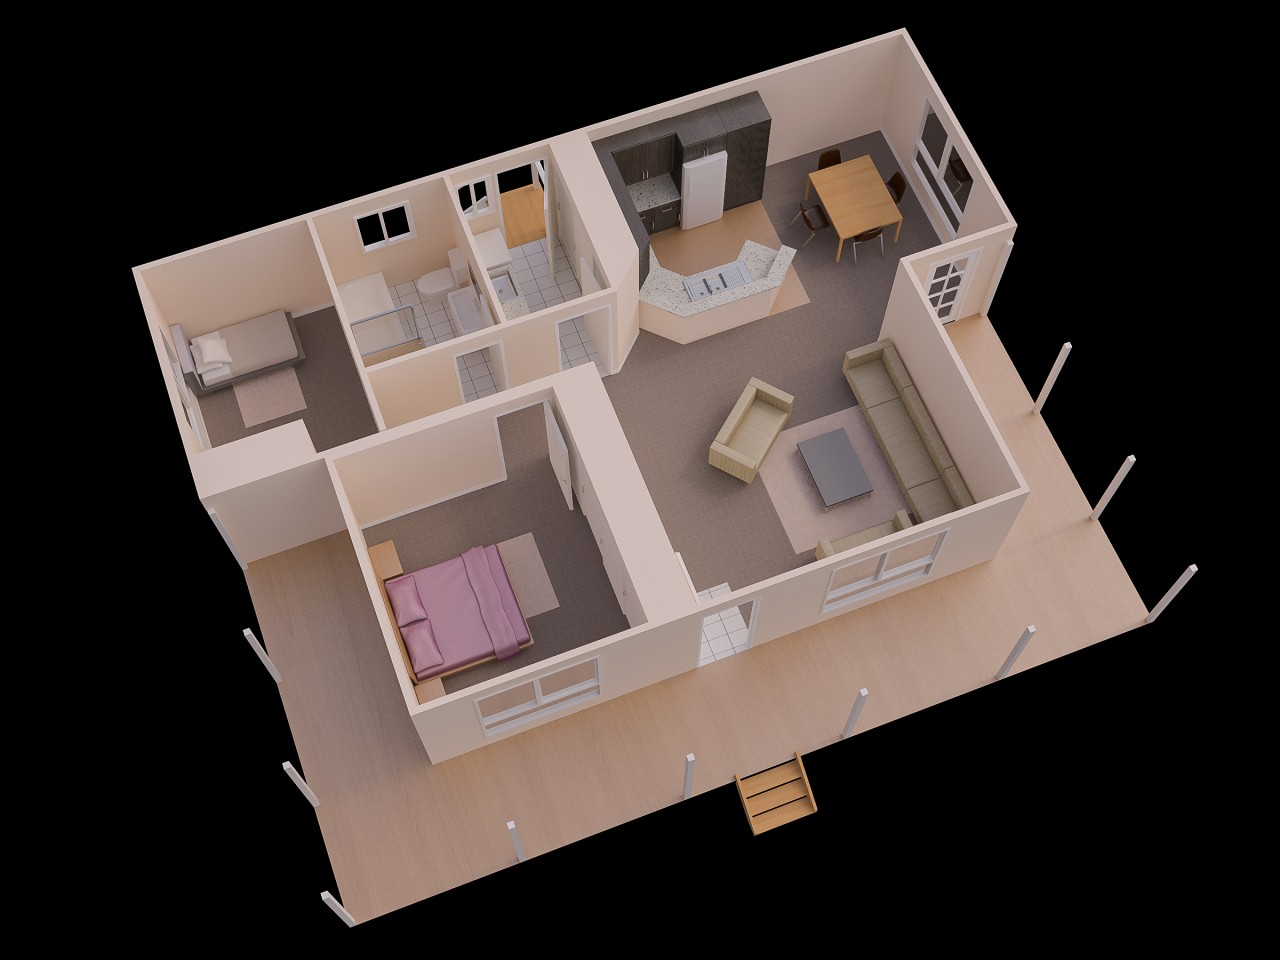 25 source westbuilt - Simple Floor Plans 2